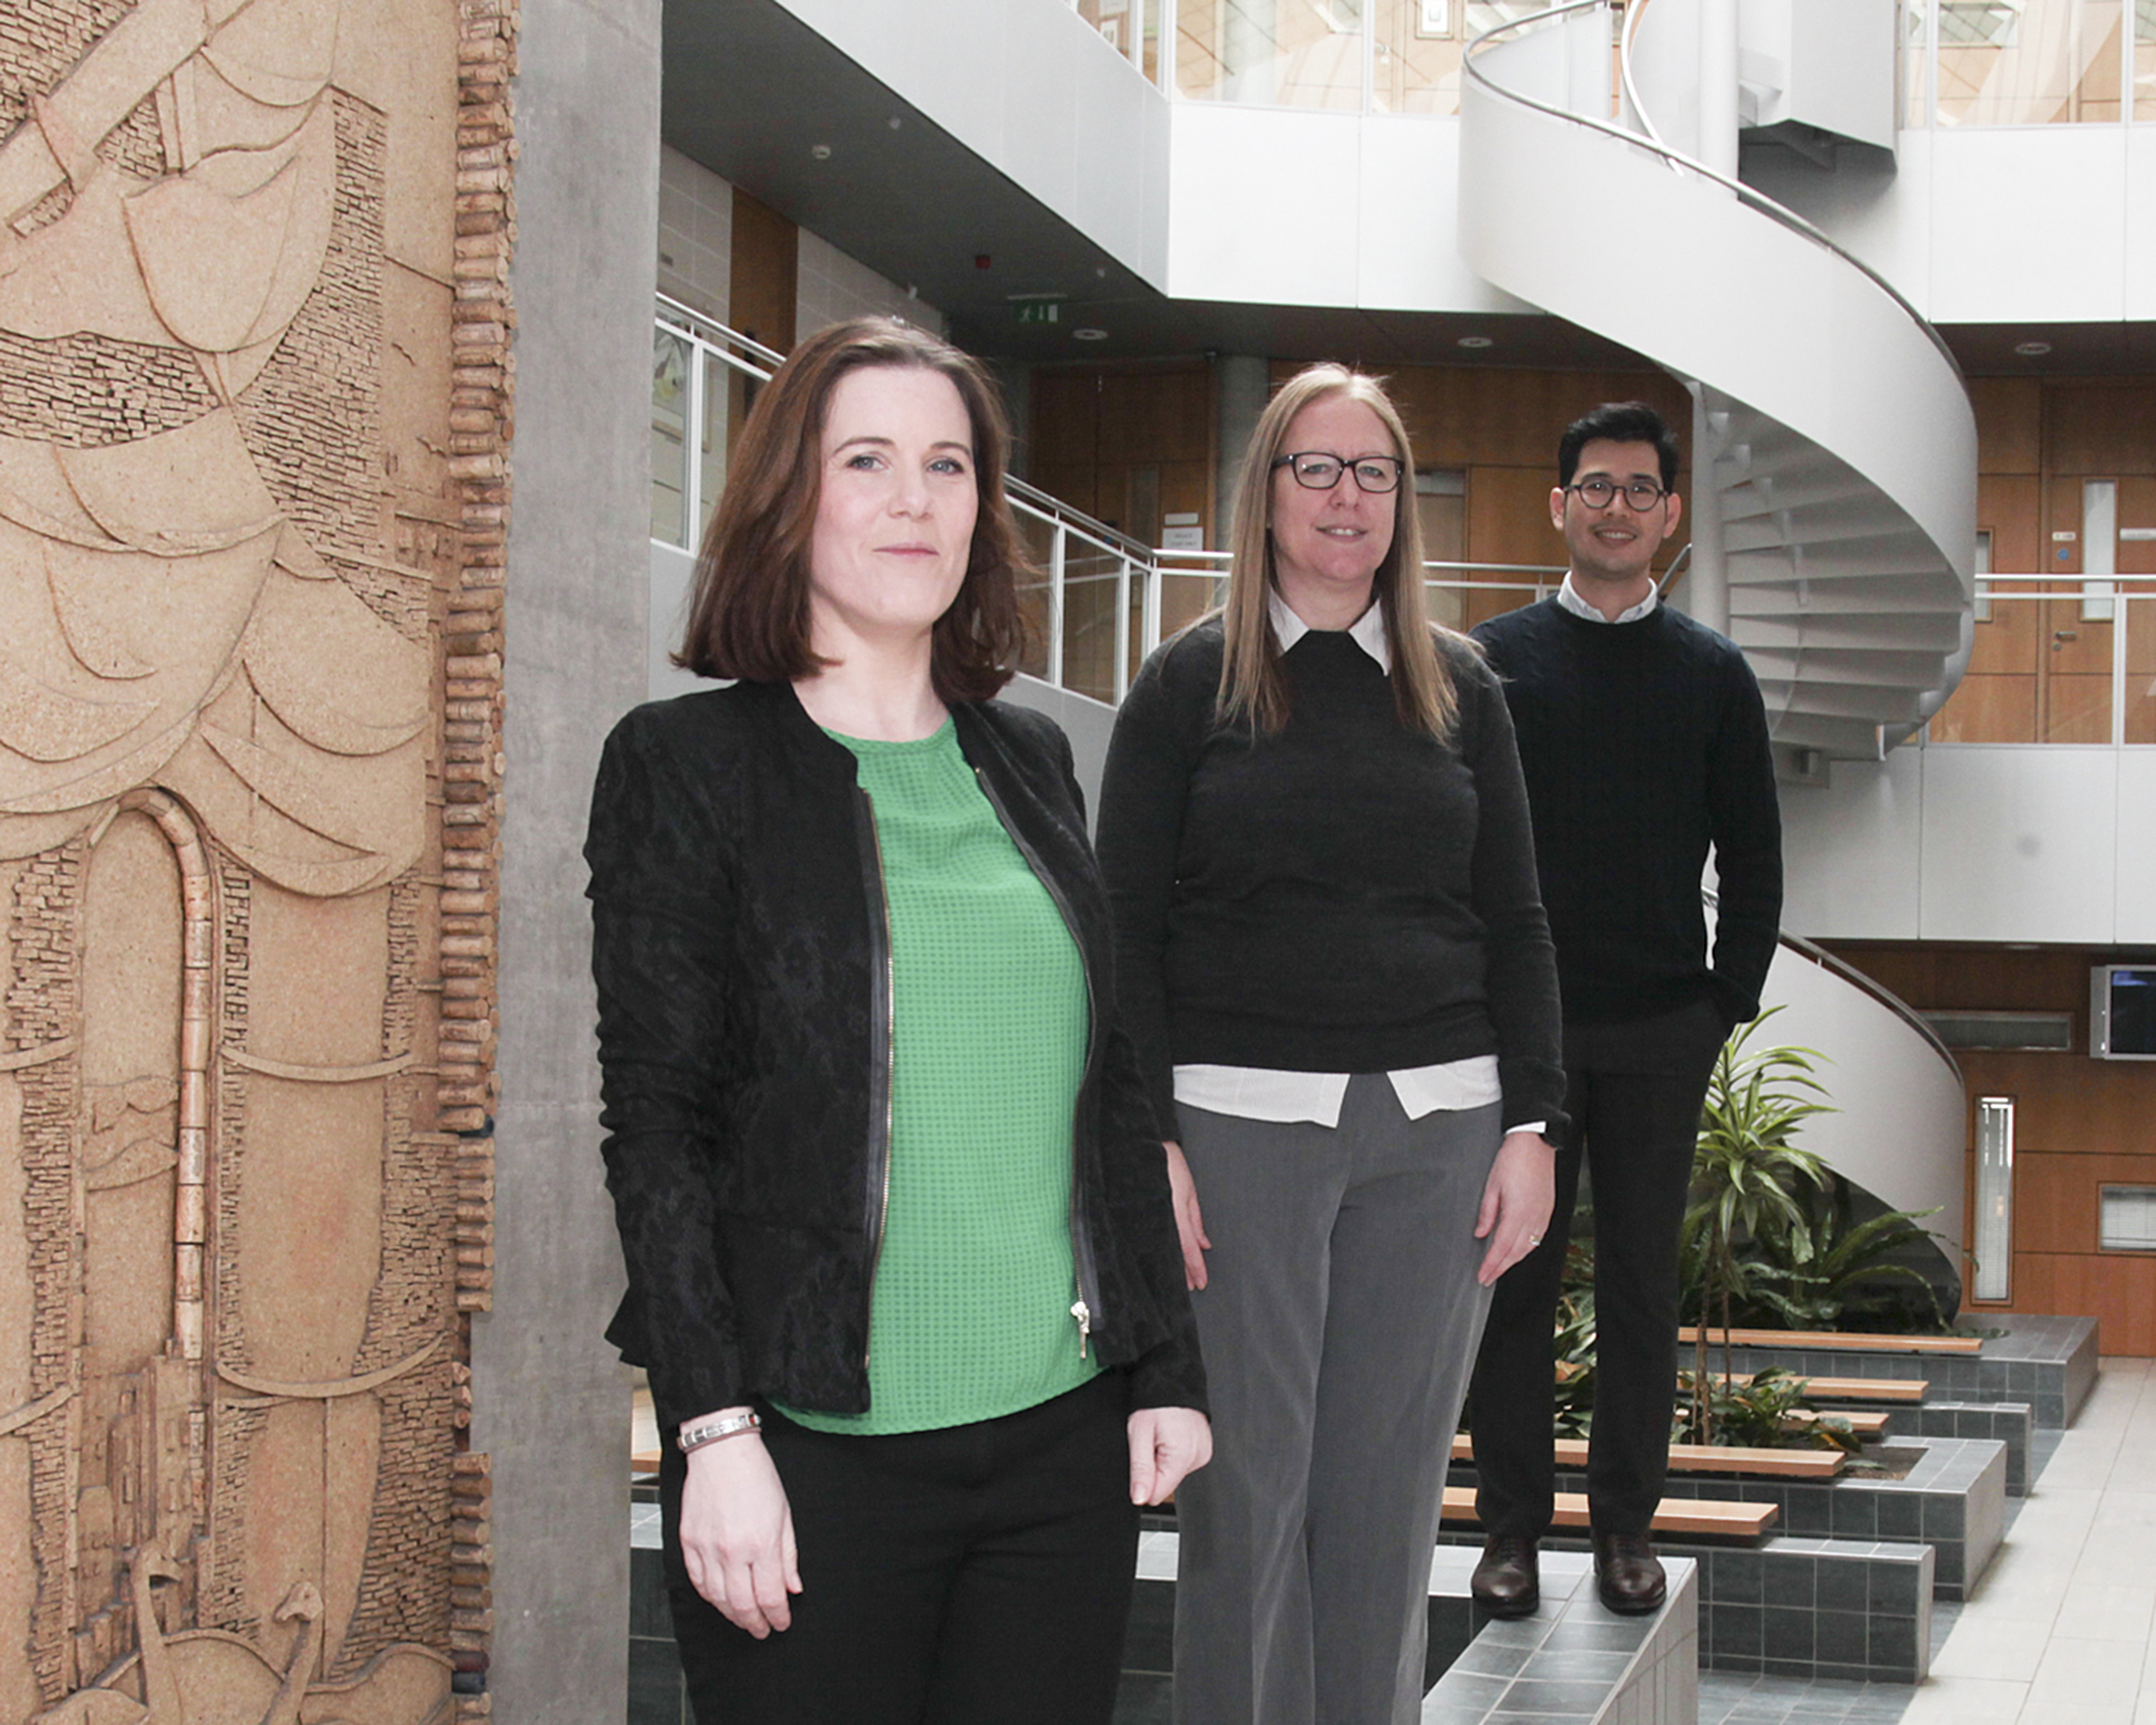 Pictured from left are: Madeline Treacy, Norah Storey and Sarn-II Baru, the three successful WIT recipients of the Irish Research Council Enterprise Partnership Scheme Awards